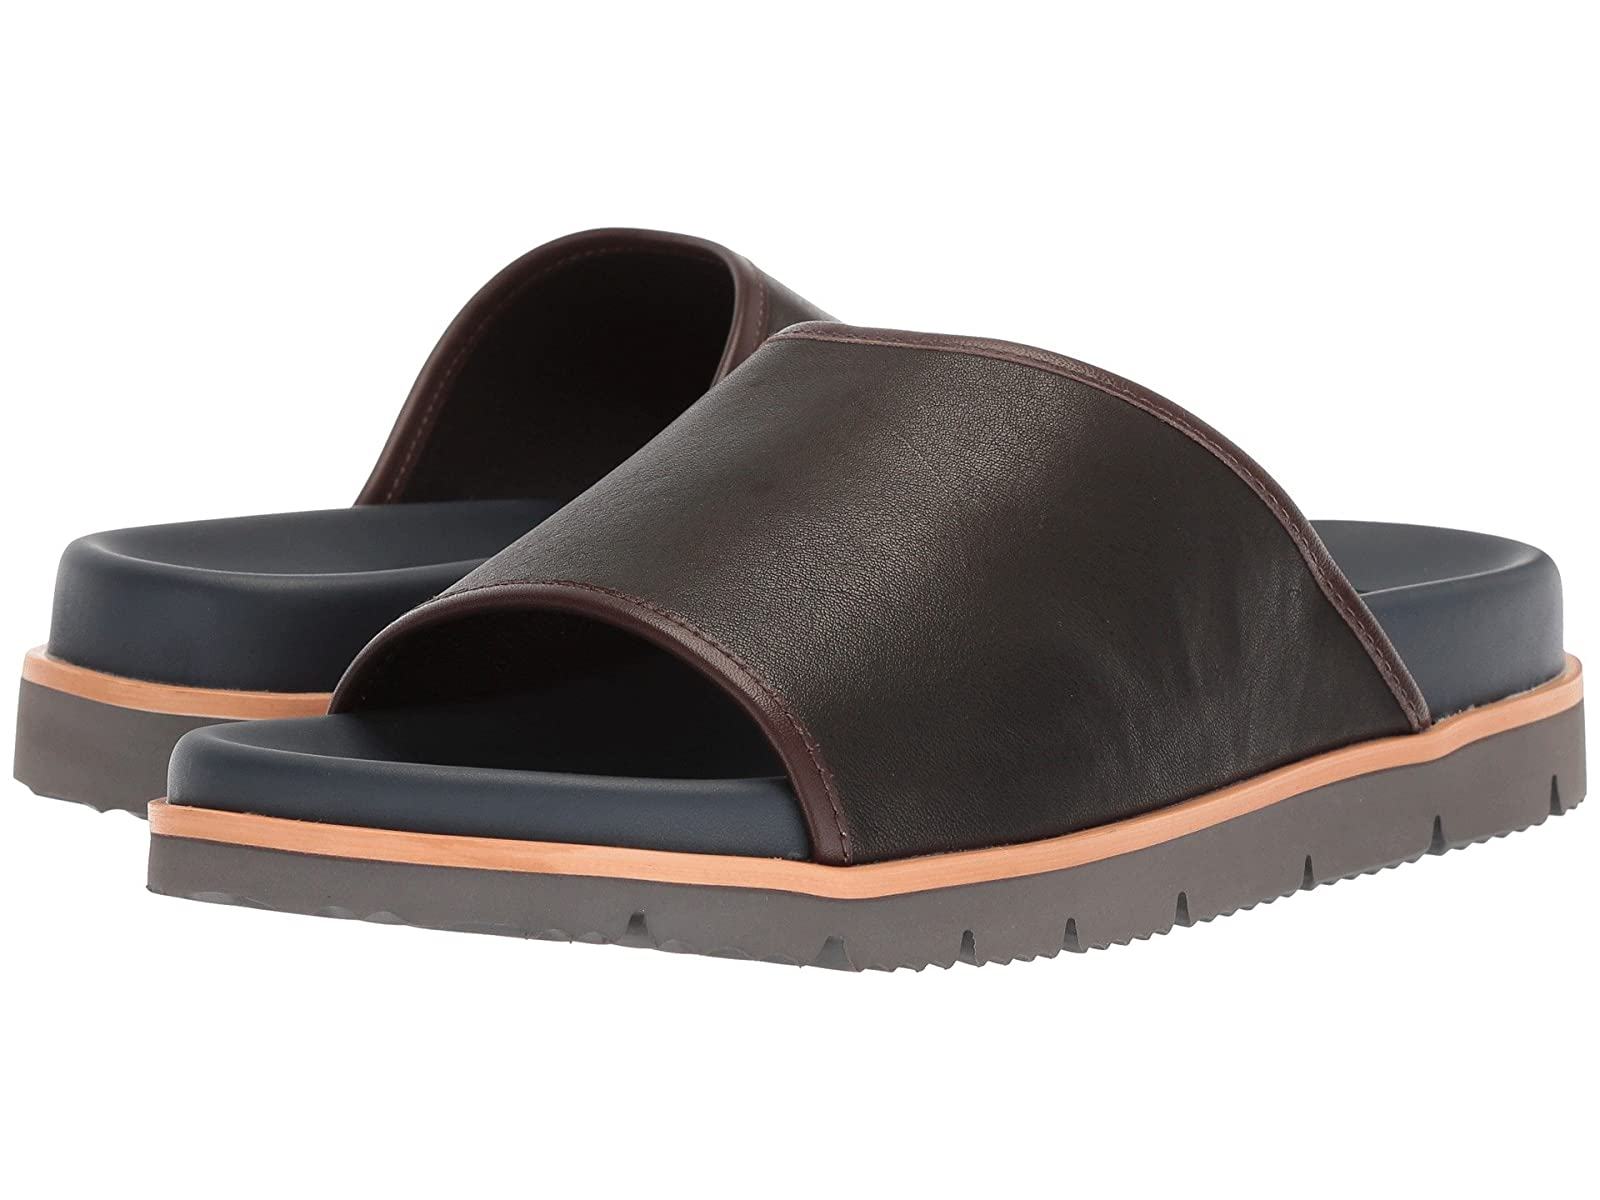 Donald J Pliner BrodyComfortable and distinctive shoes